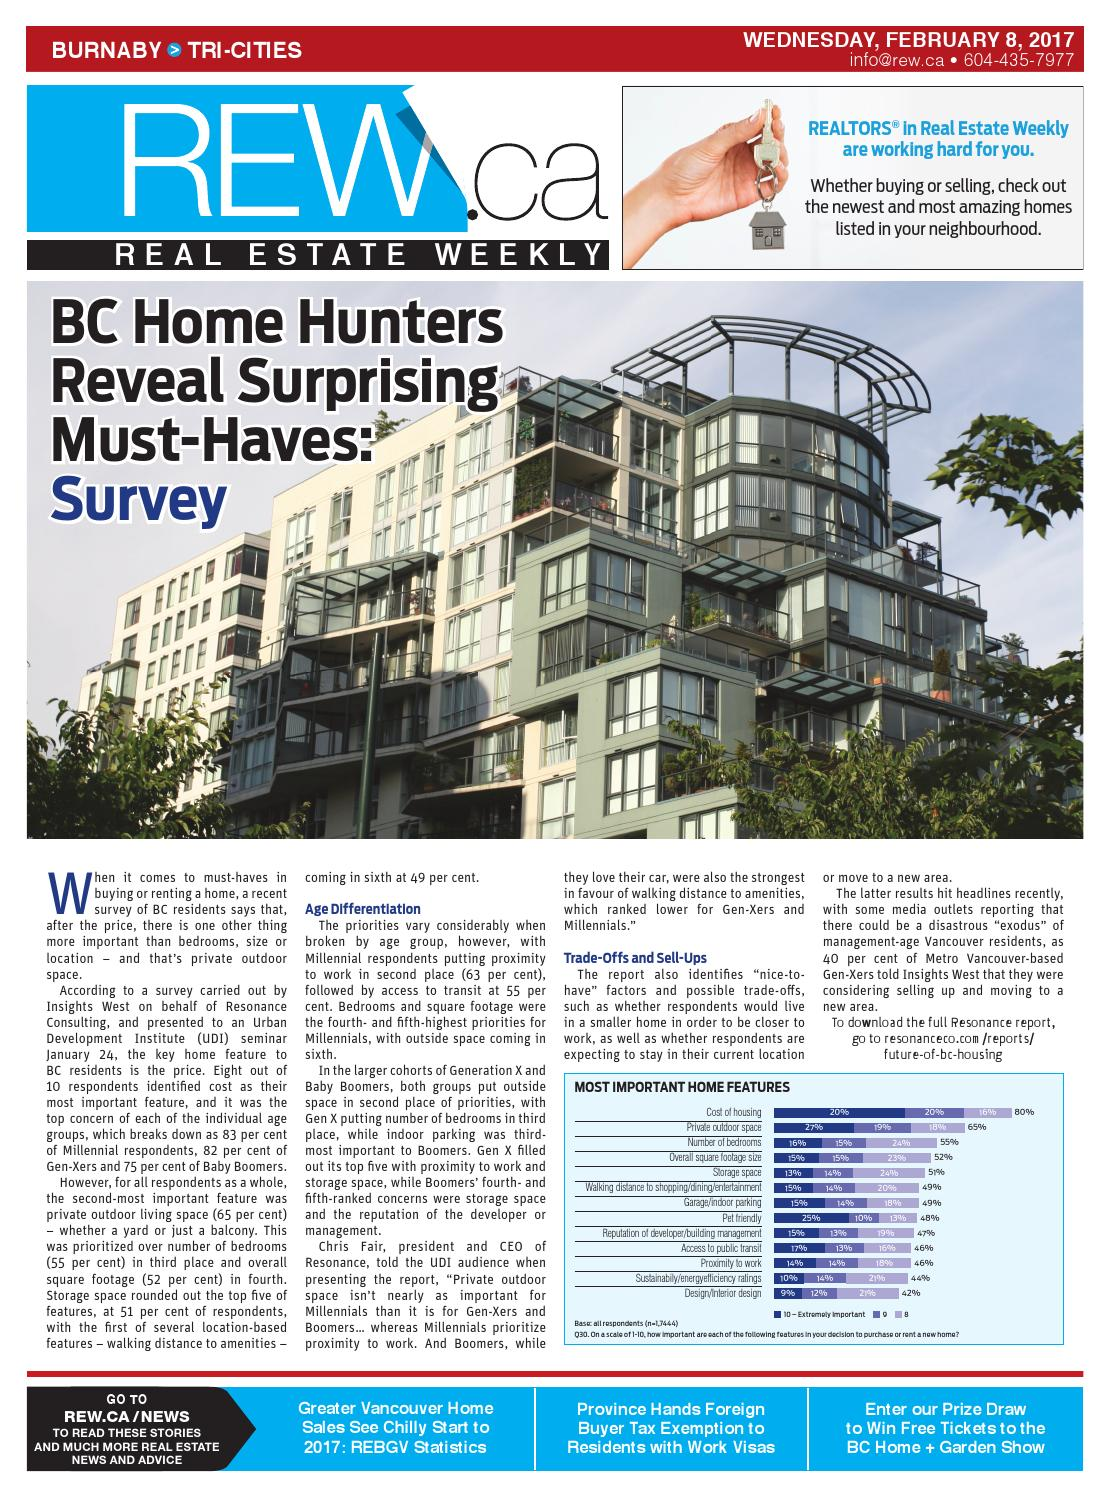 BURNABY / TRI CITIES Feb 8, 2017 Real Estate Weekly By Real Estate Weekly    Issuu